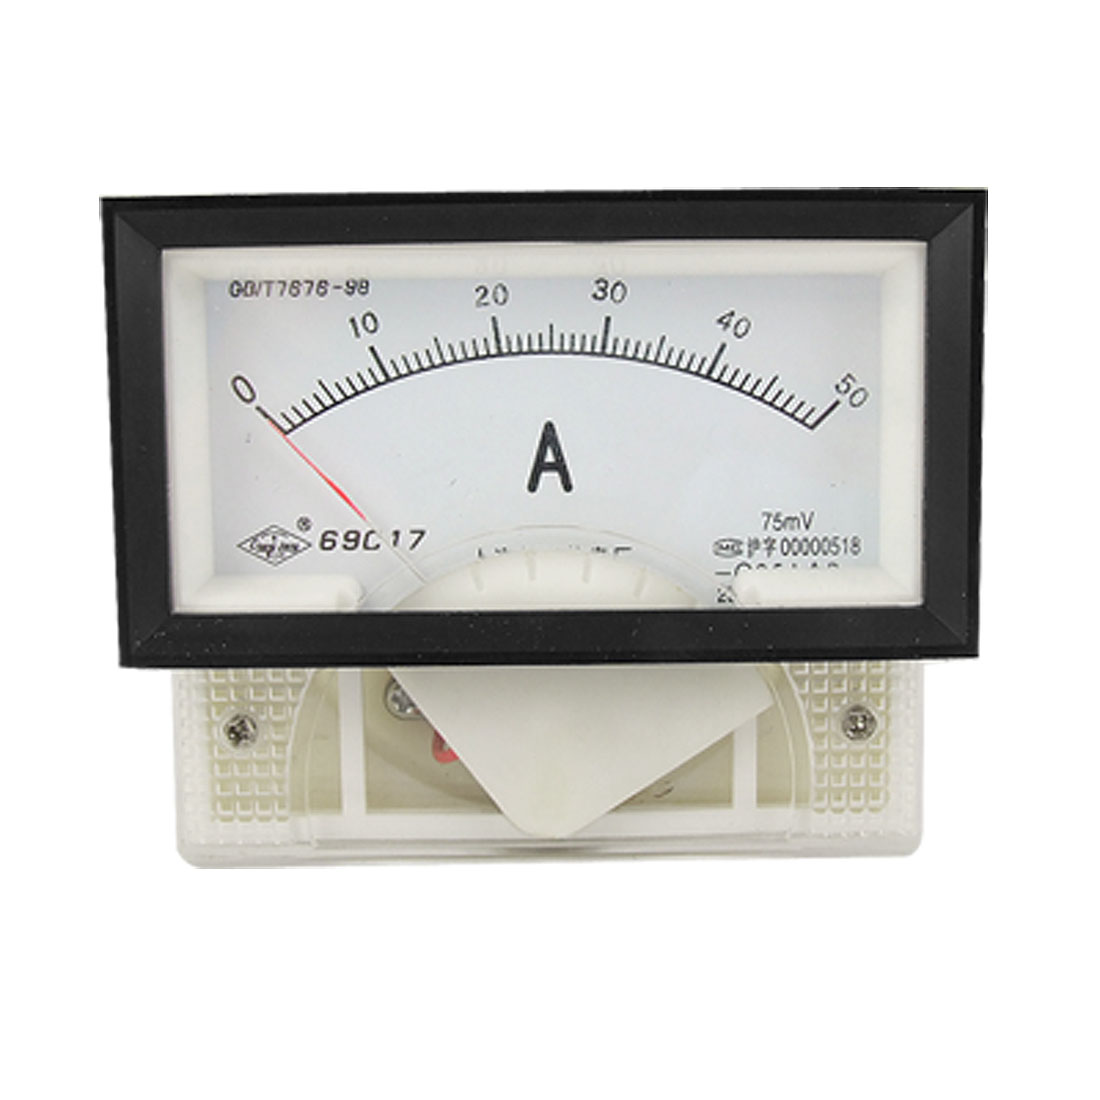 DC 0-50A Rectangle Panel Current Meter Analog Ammeter 69C17